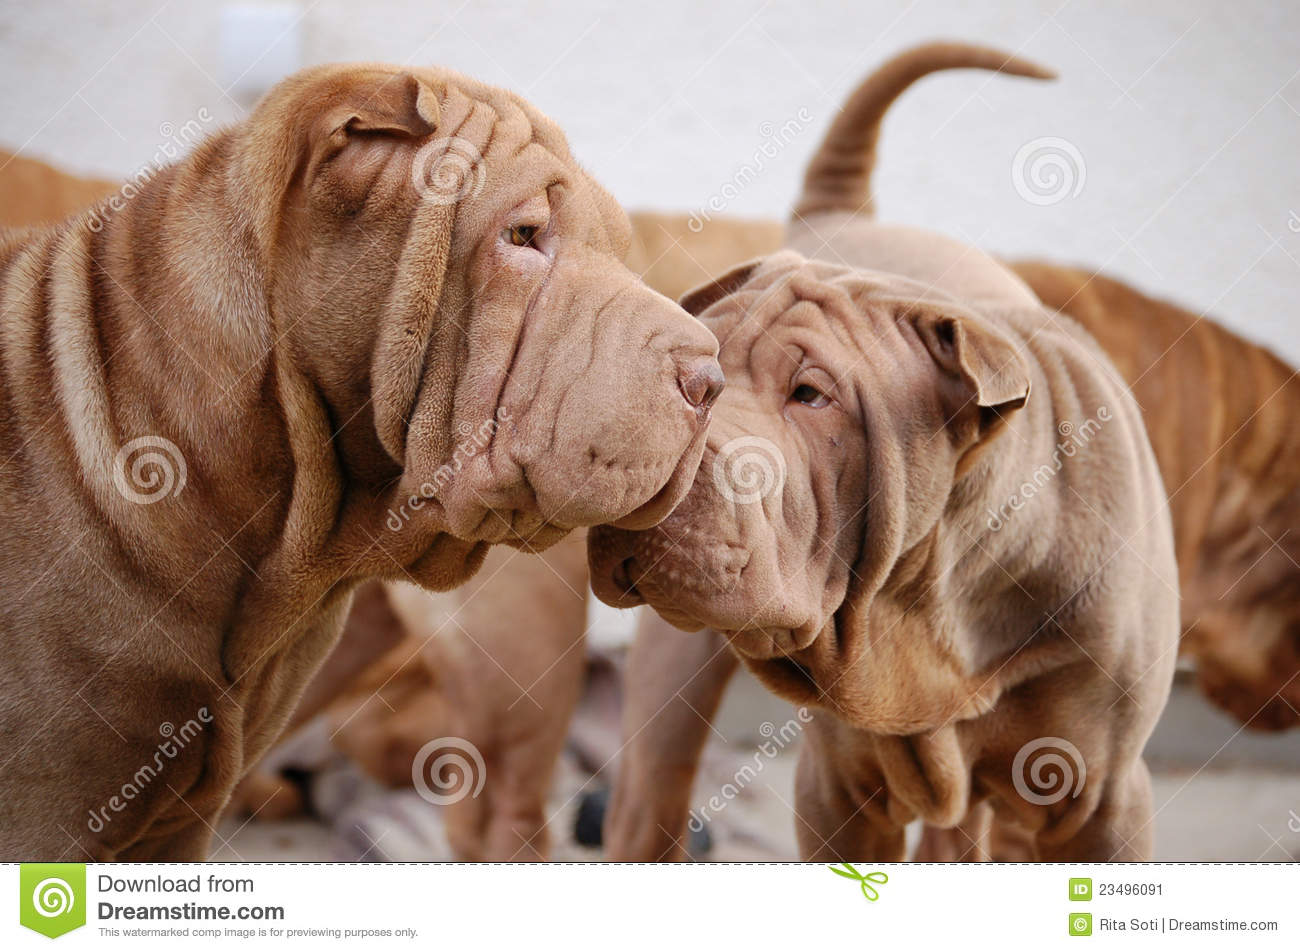 Chocolate Shar Pei Dogs Stock Image - Image: 23496091